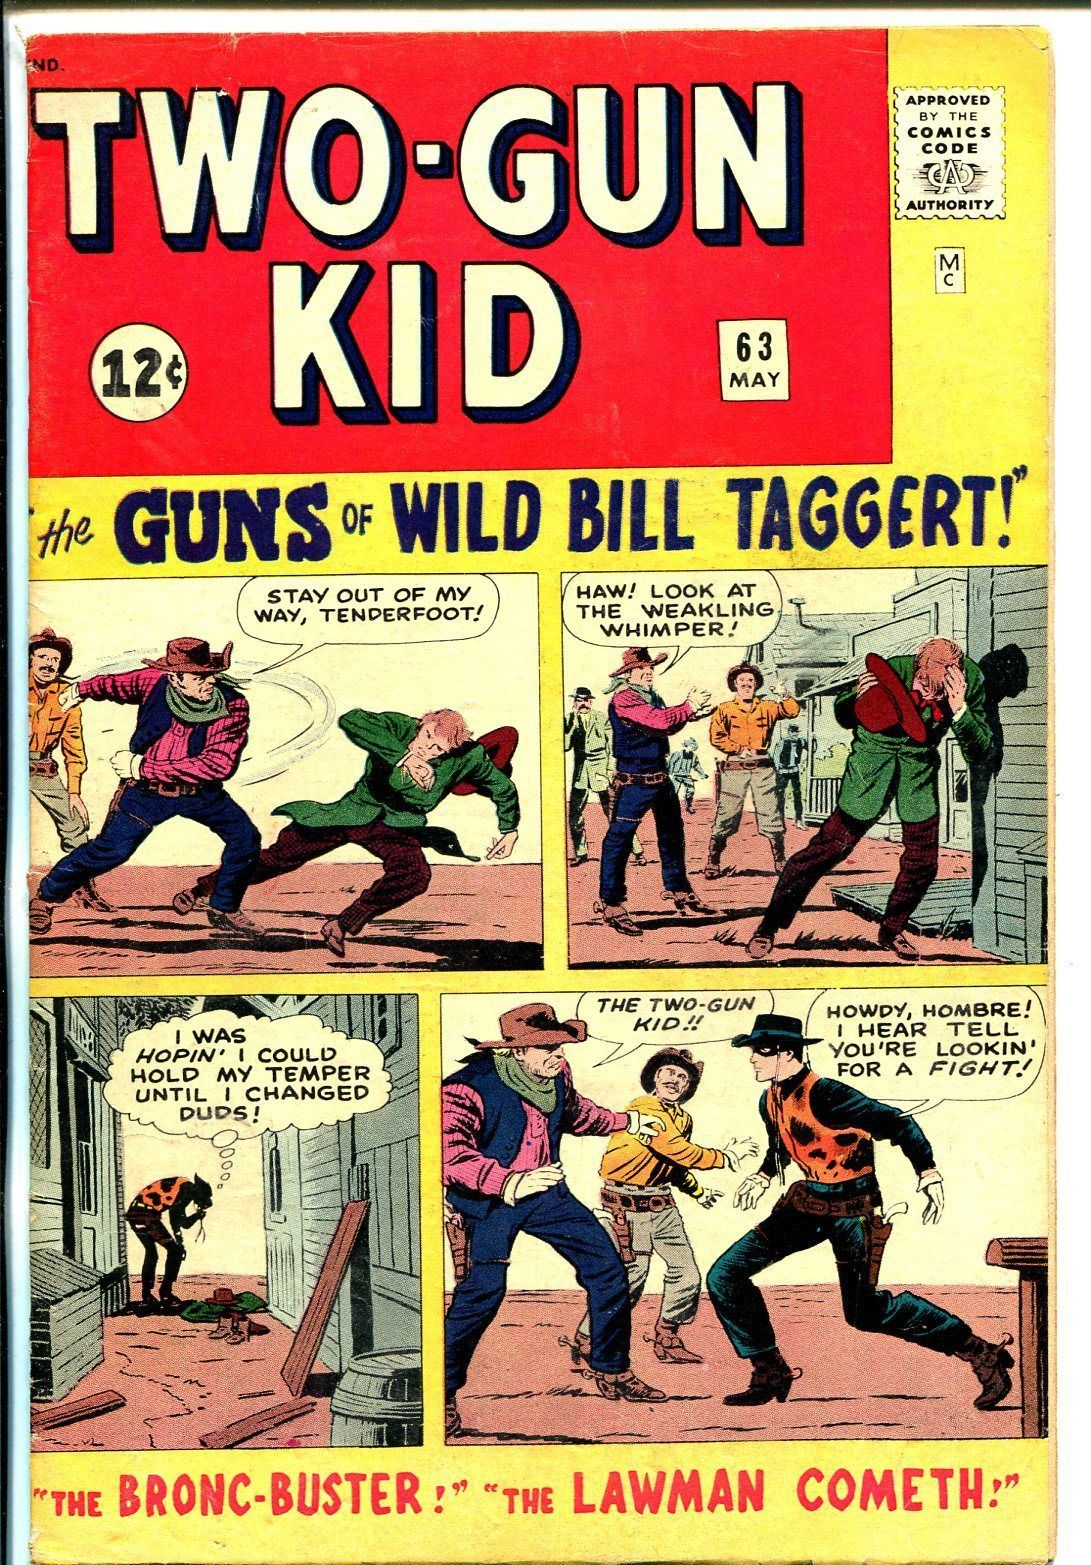 Two-Gun Kid #63 1963-Marvel-John Severin-JacK Kirby-VG/FN